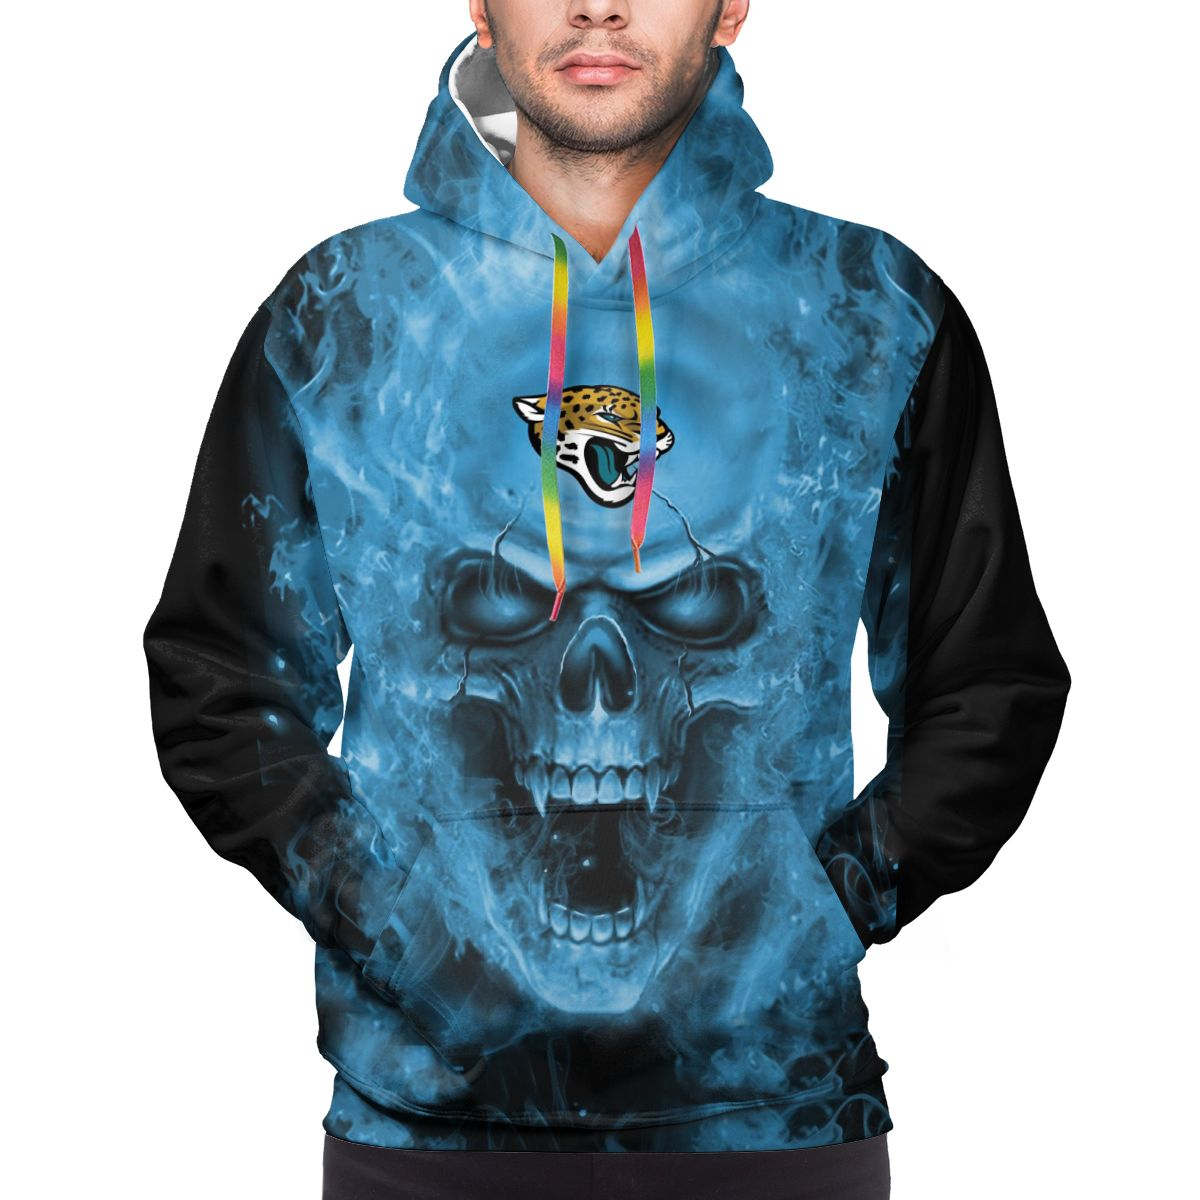 3D Skull Jaguars Logo Print Hoodies For Men Pullover Sweatshirt